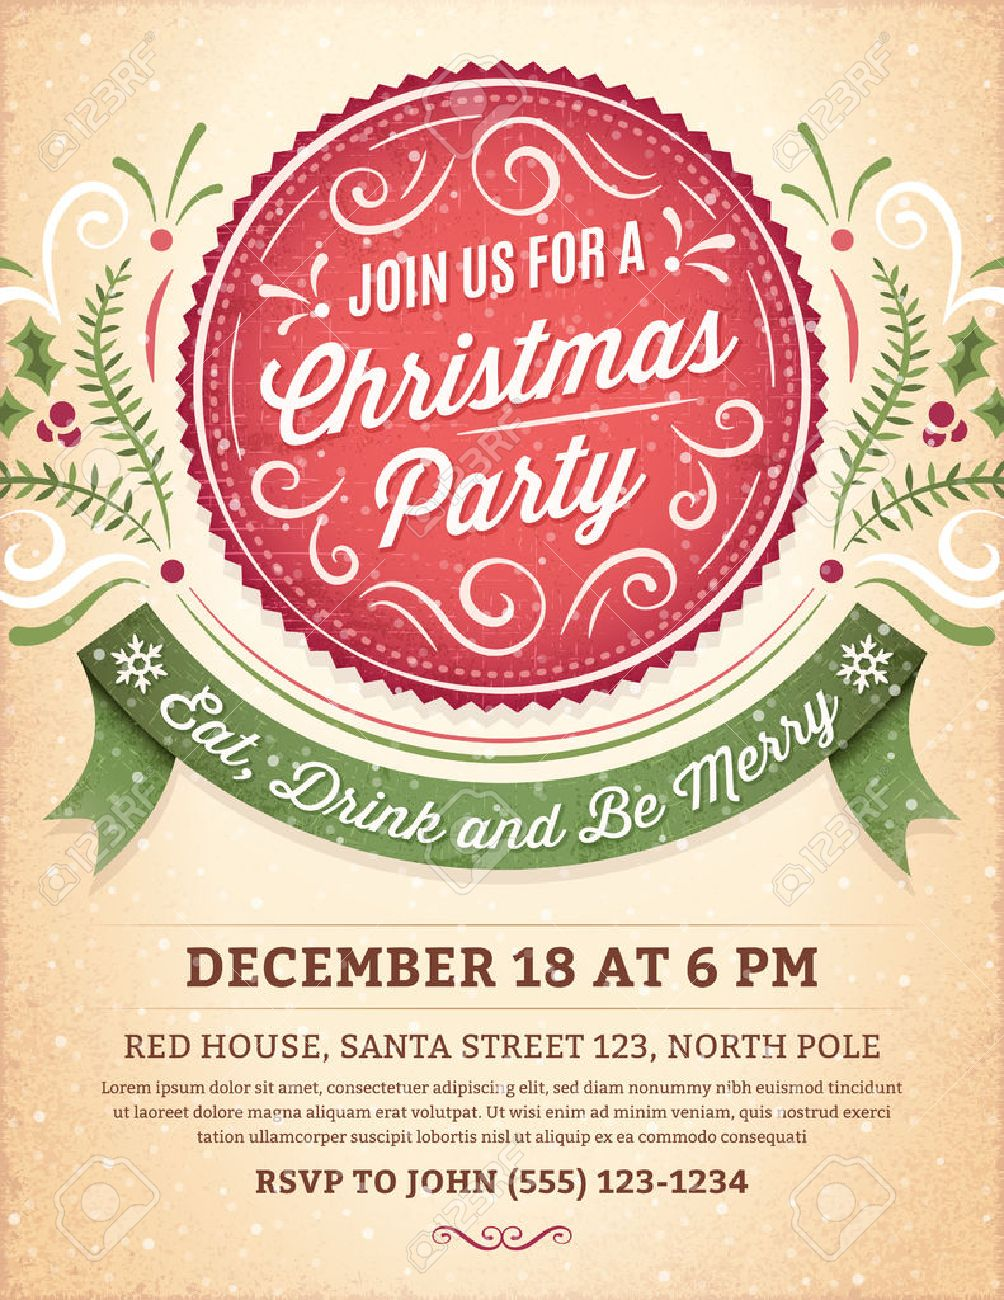 Christmas Party Invitation With Ornaments, Label And Ribbon. Royalty ...